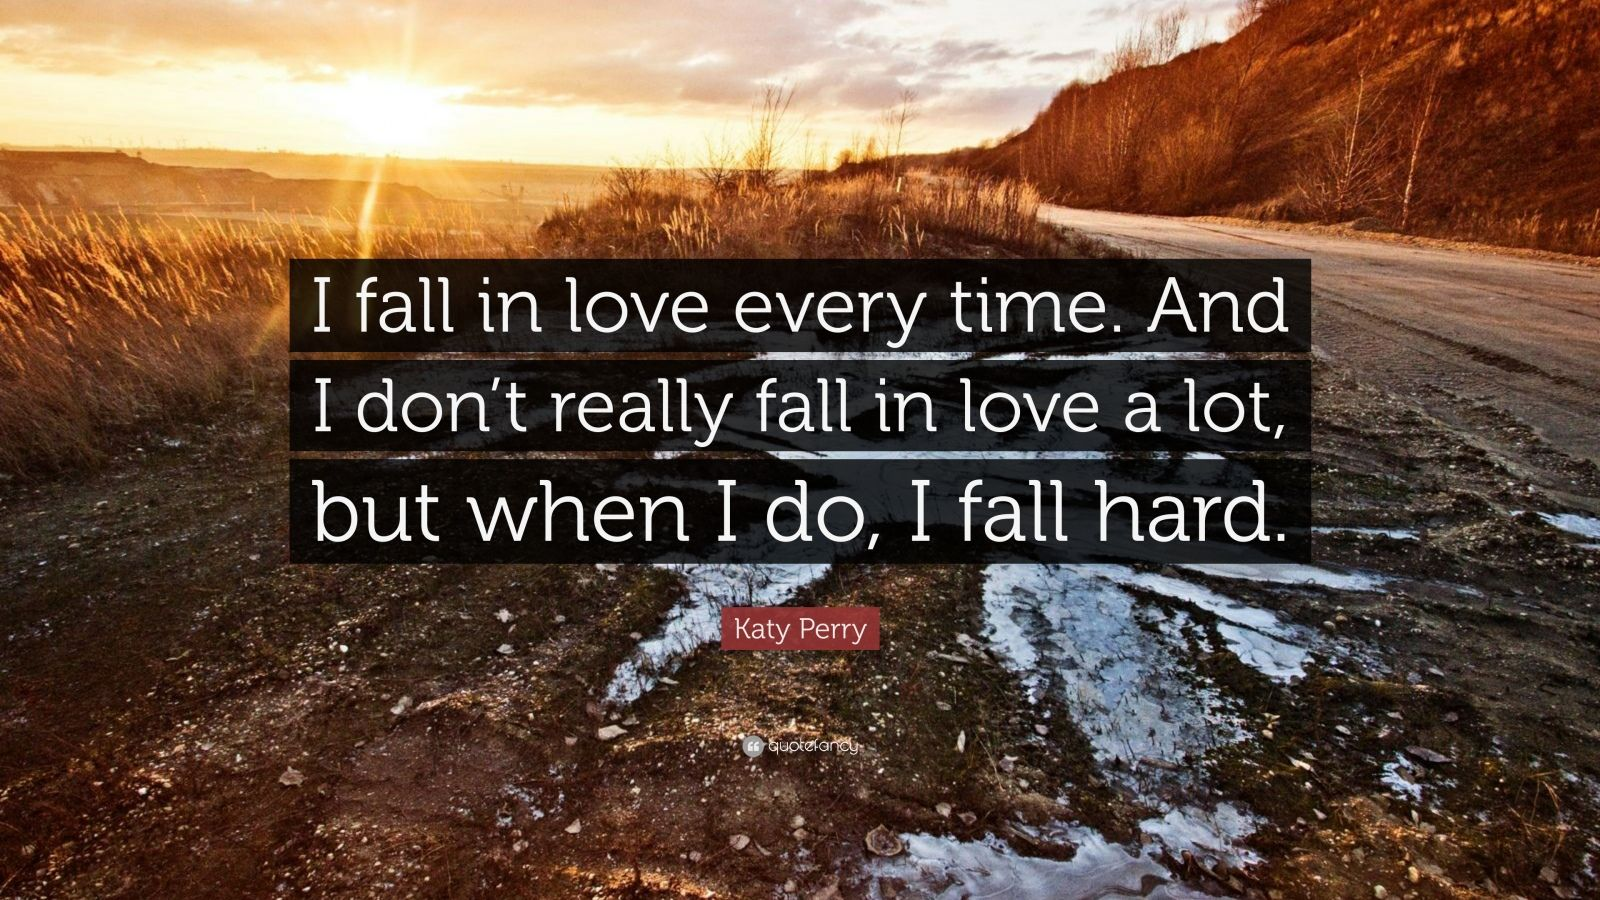 """Katy Perry Quote: """"I fall in love every time. And I don't really fall in love a lot, but when I do, I fall hard."""""""